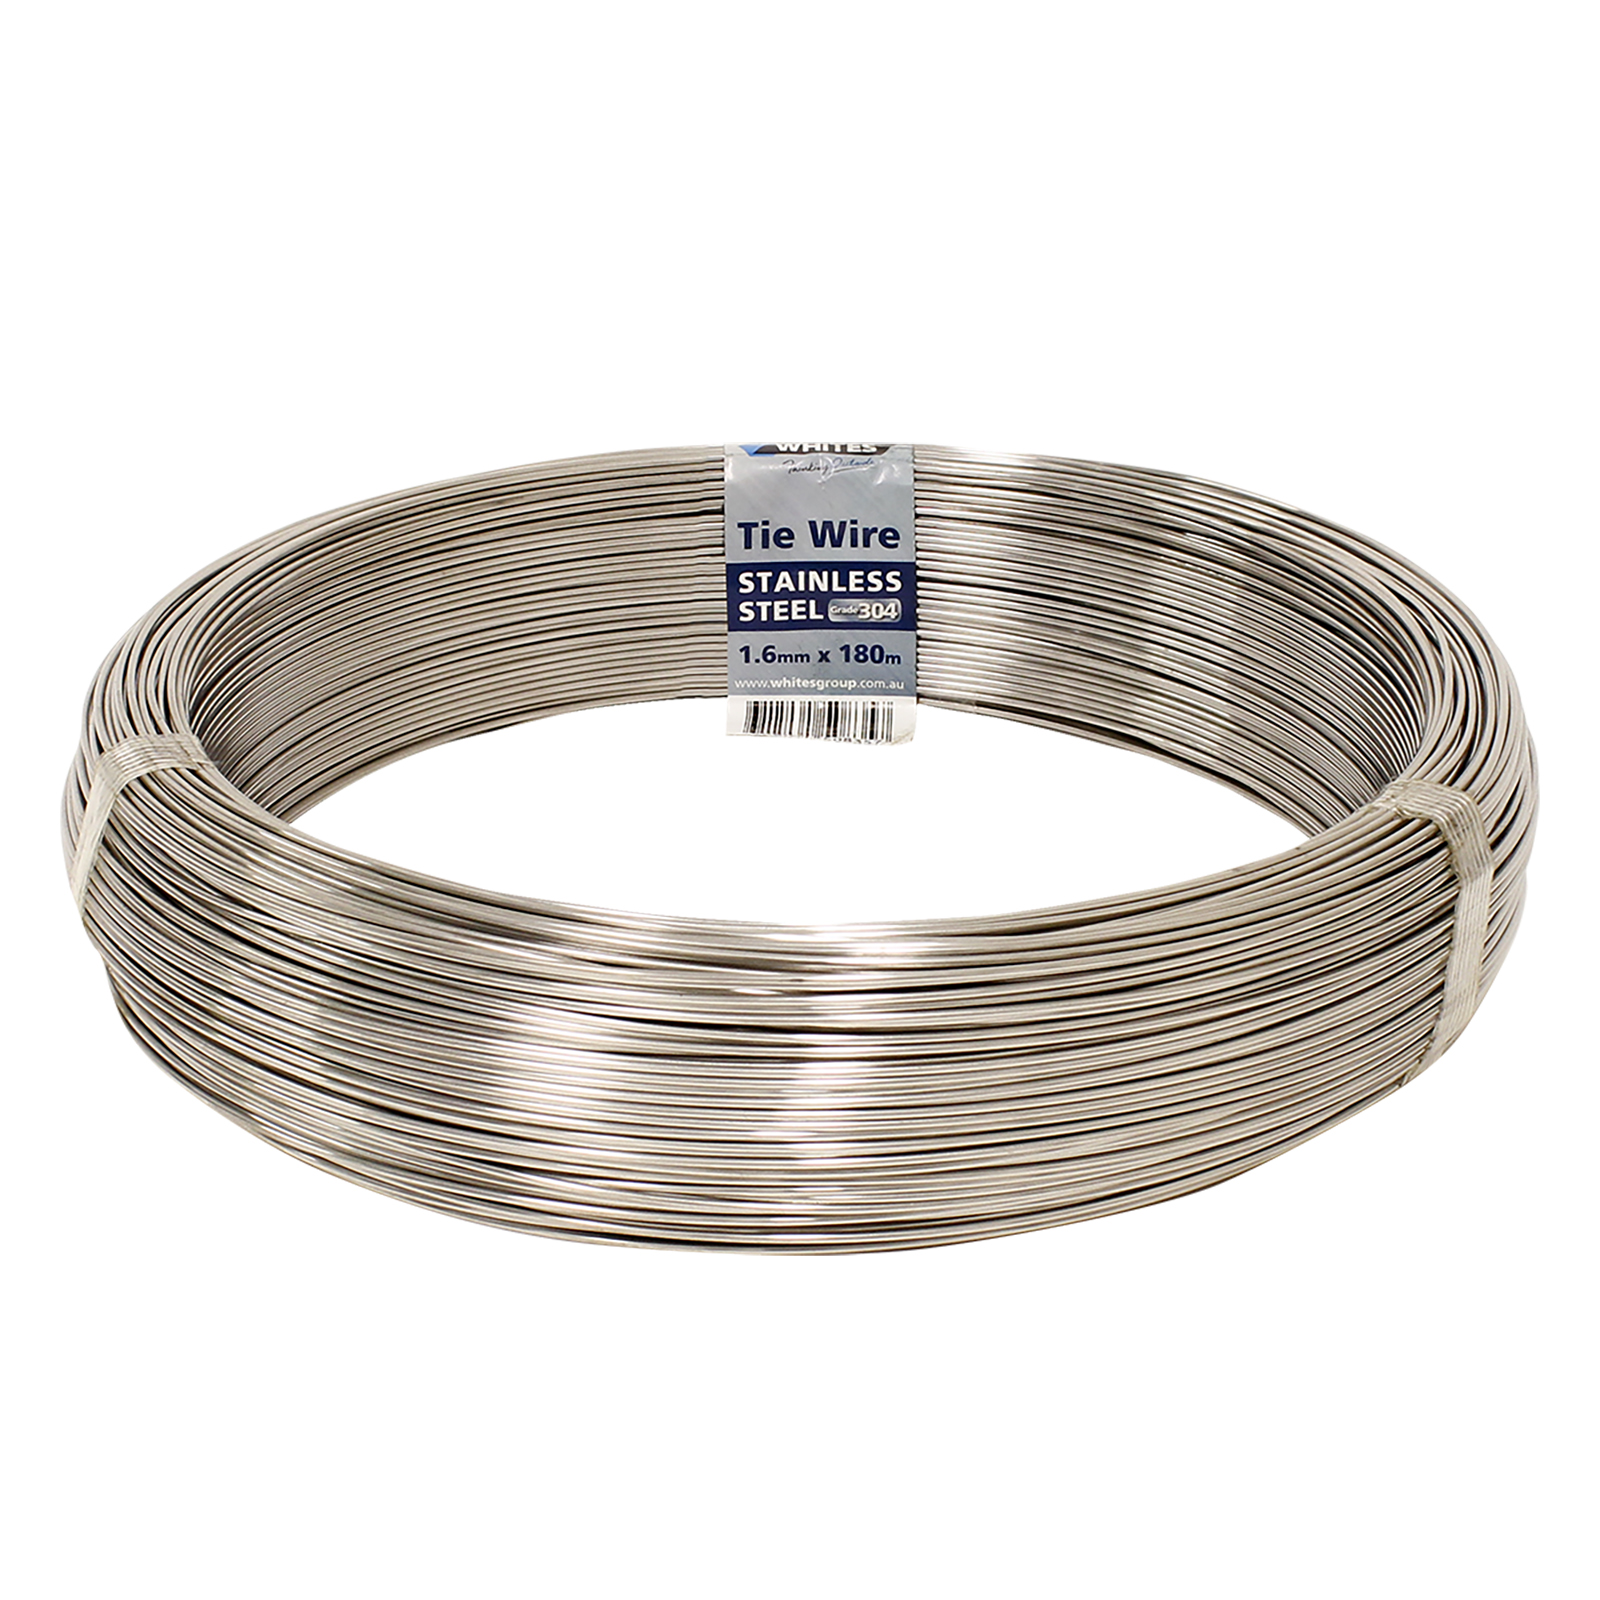 50835 - Tie Wire S Steel-1.6mm x 180m